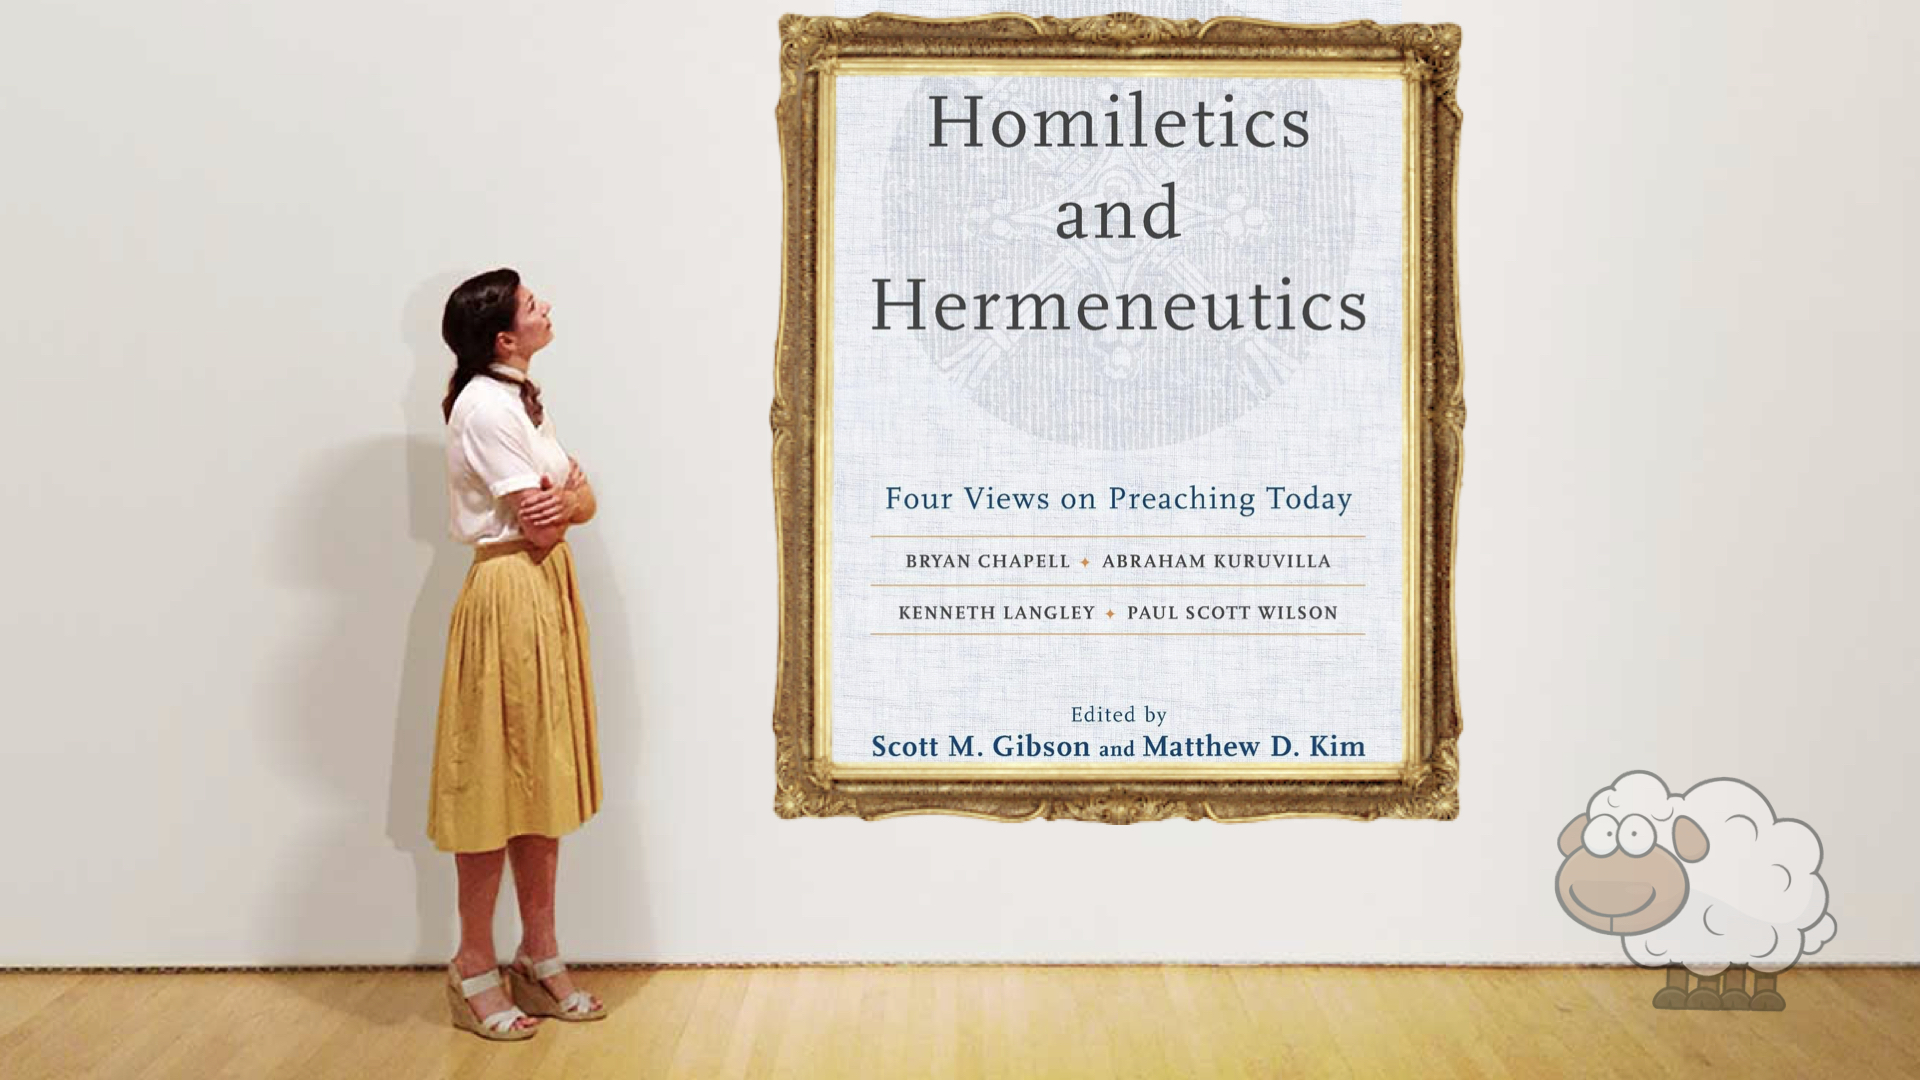 Gibson, Scott M. and Matthew D. Kim, eds.   Homiletics and Hermeneutics: Four Views on Preaching Today   .  Grand Rapids, MI: Baker Academic, 2018, 163 pp. $27.49.